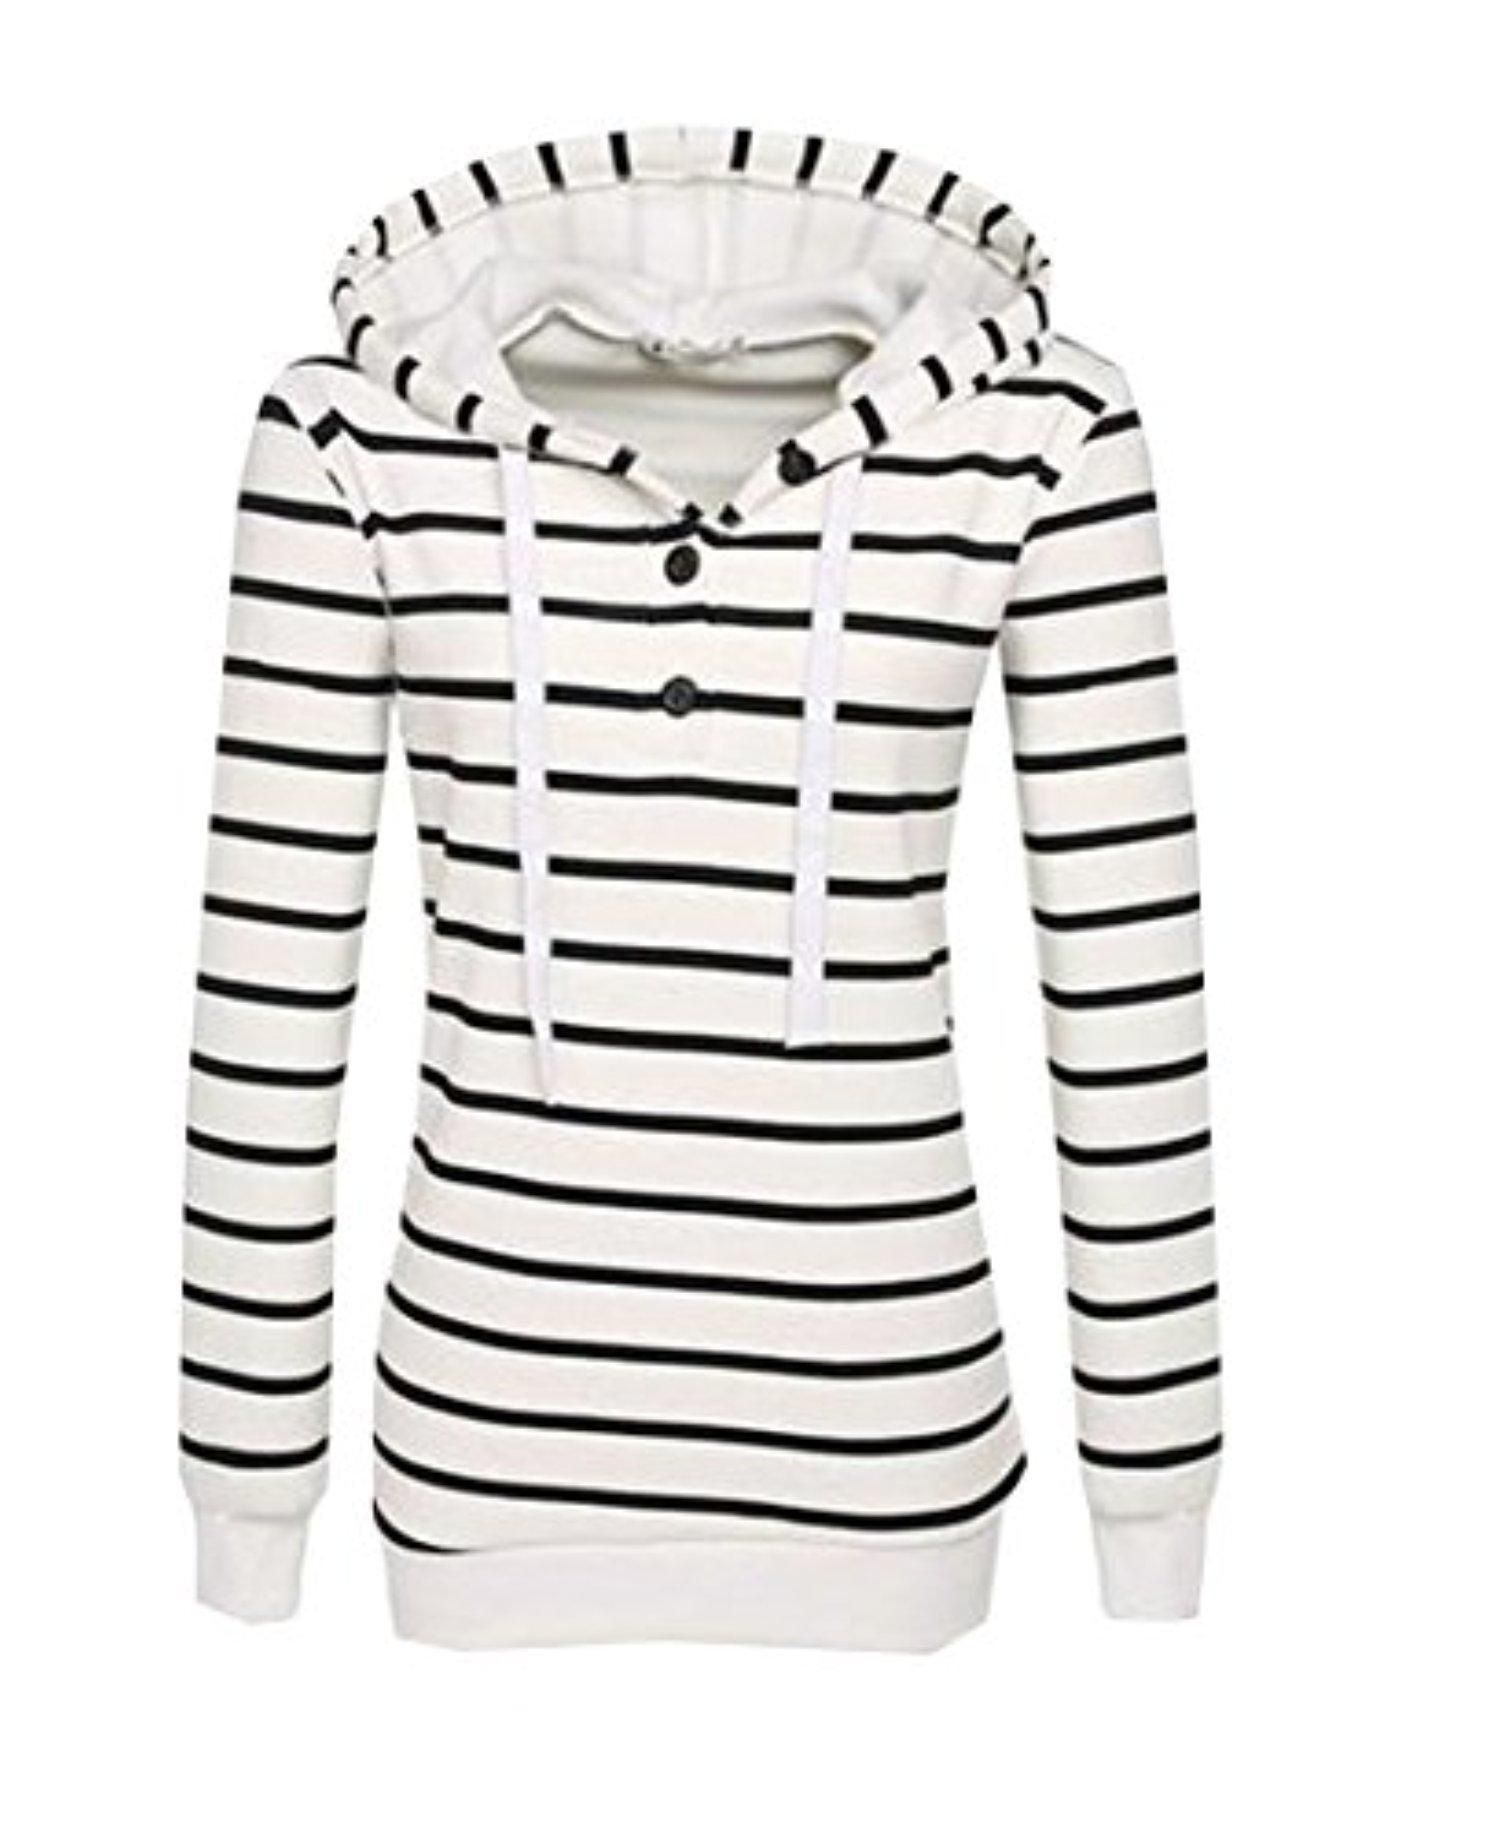 Abetteric Women's Striped Drawstring Hooded Pullover Hoodie Top White XXS - Brought to you by Avarsha.com